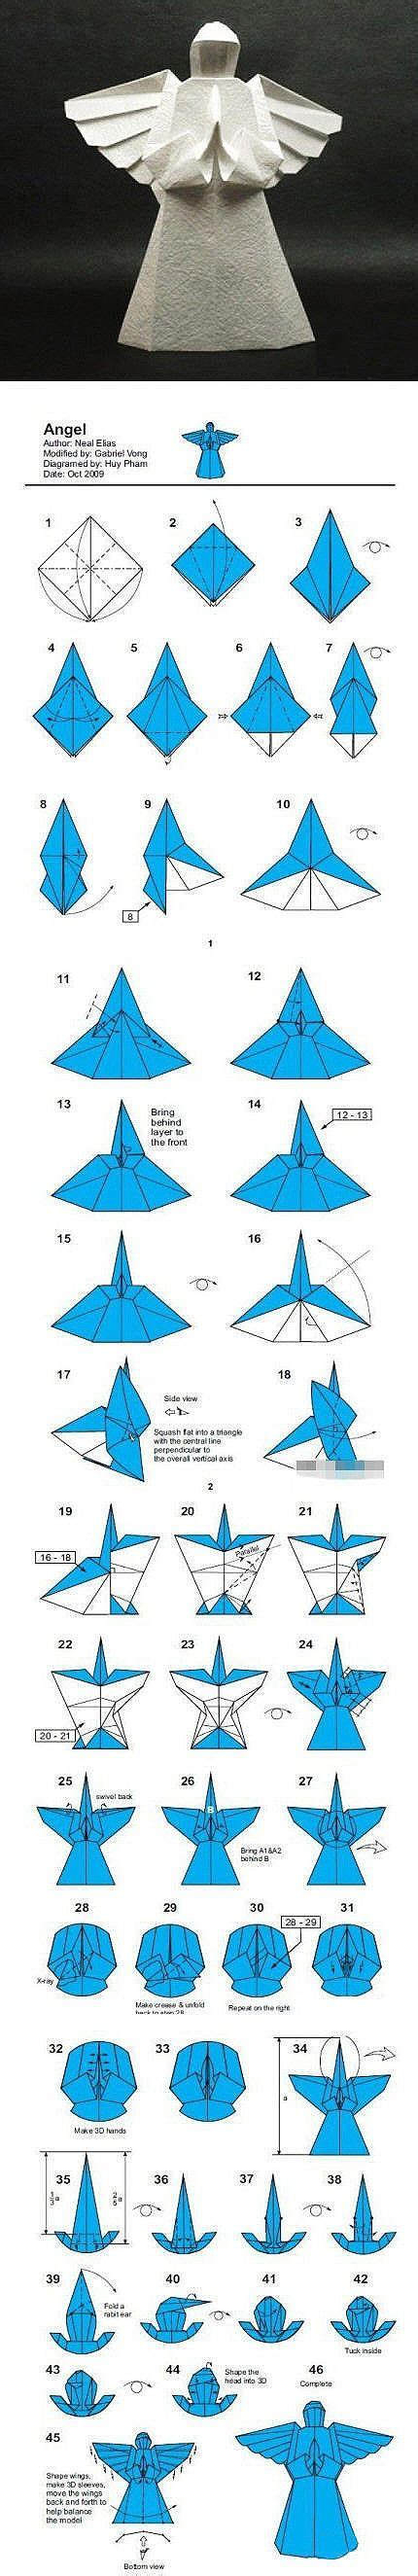 Origami Angle - origami i can see this being made with starch